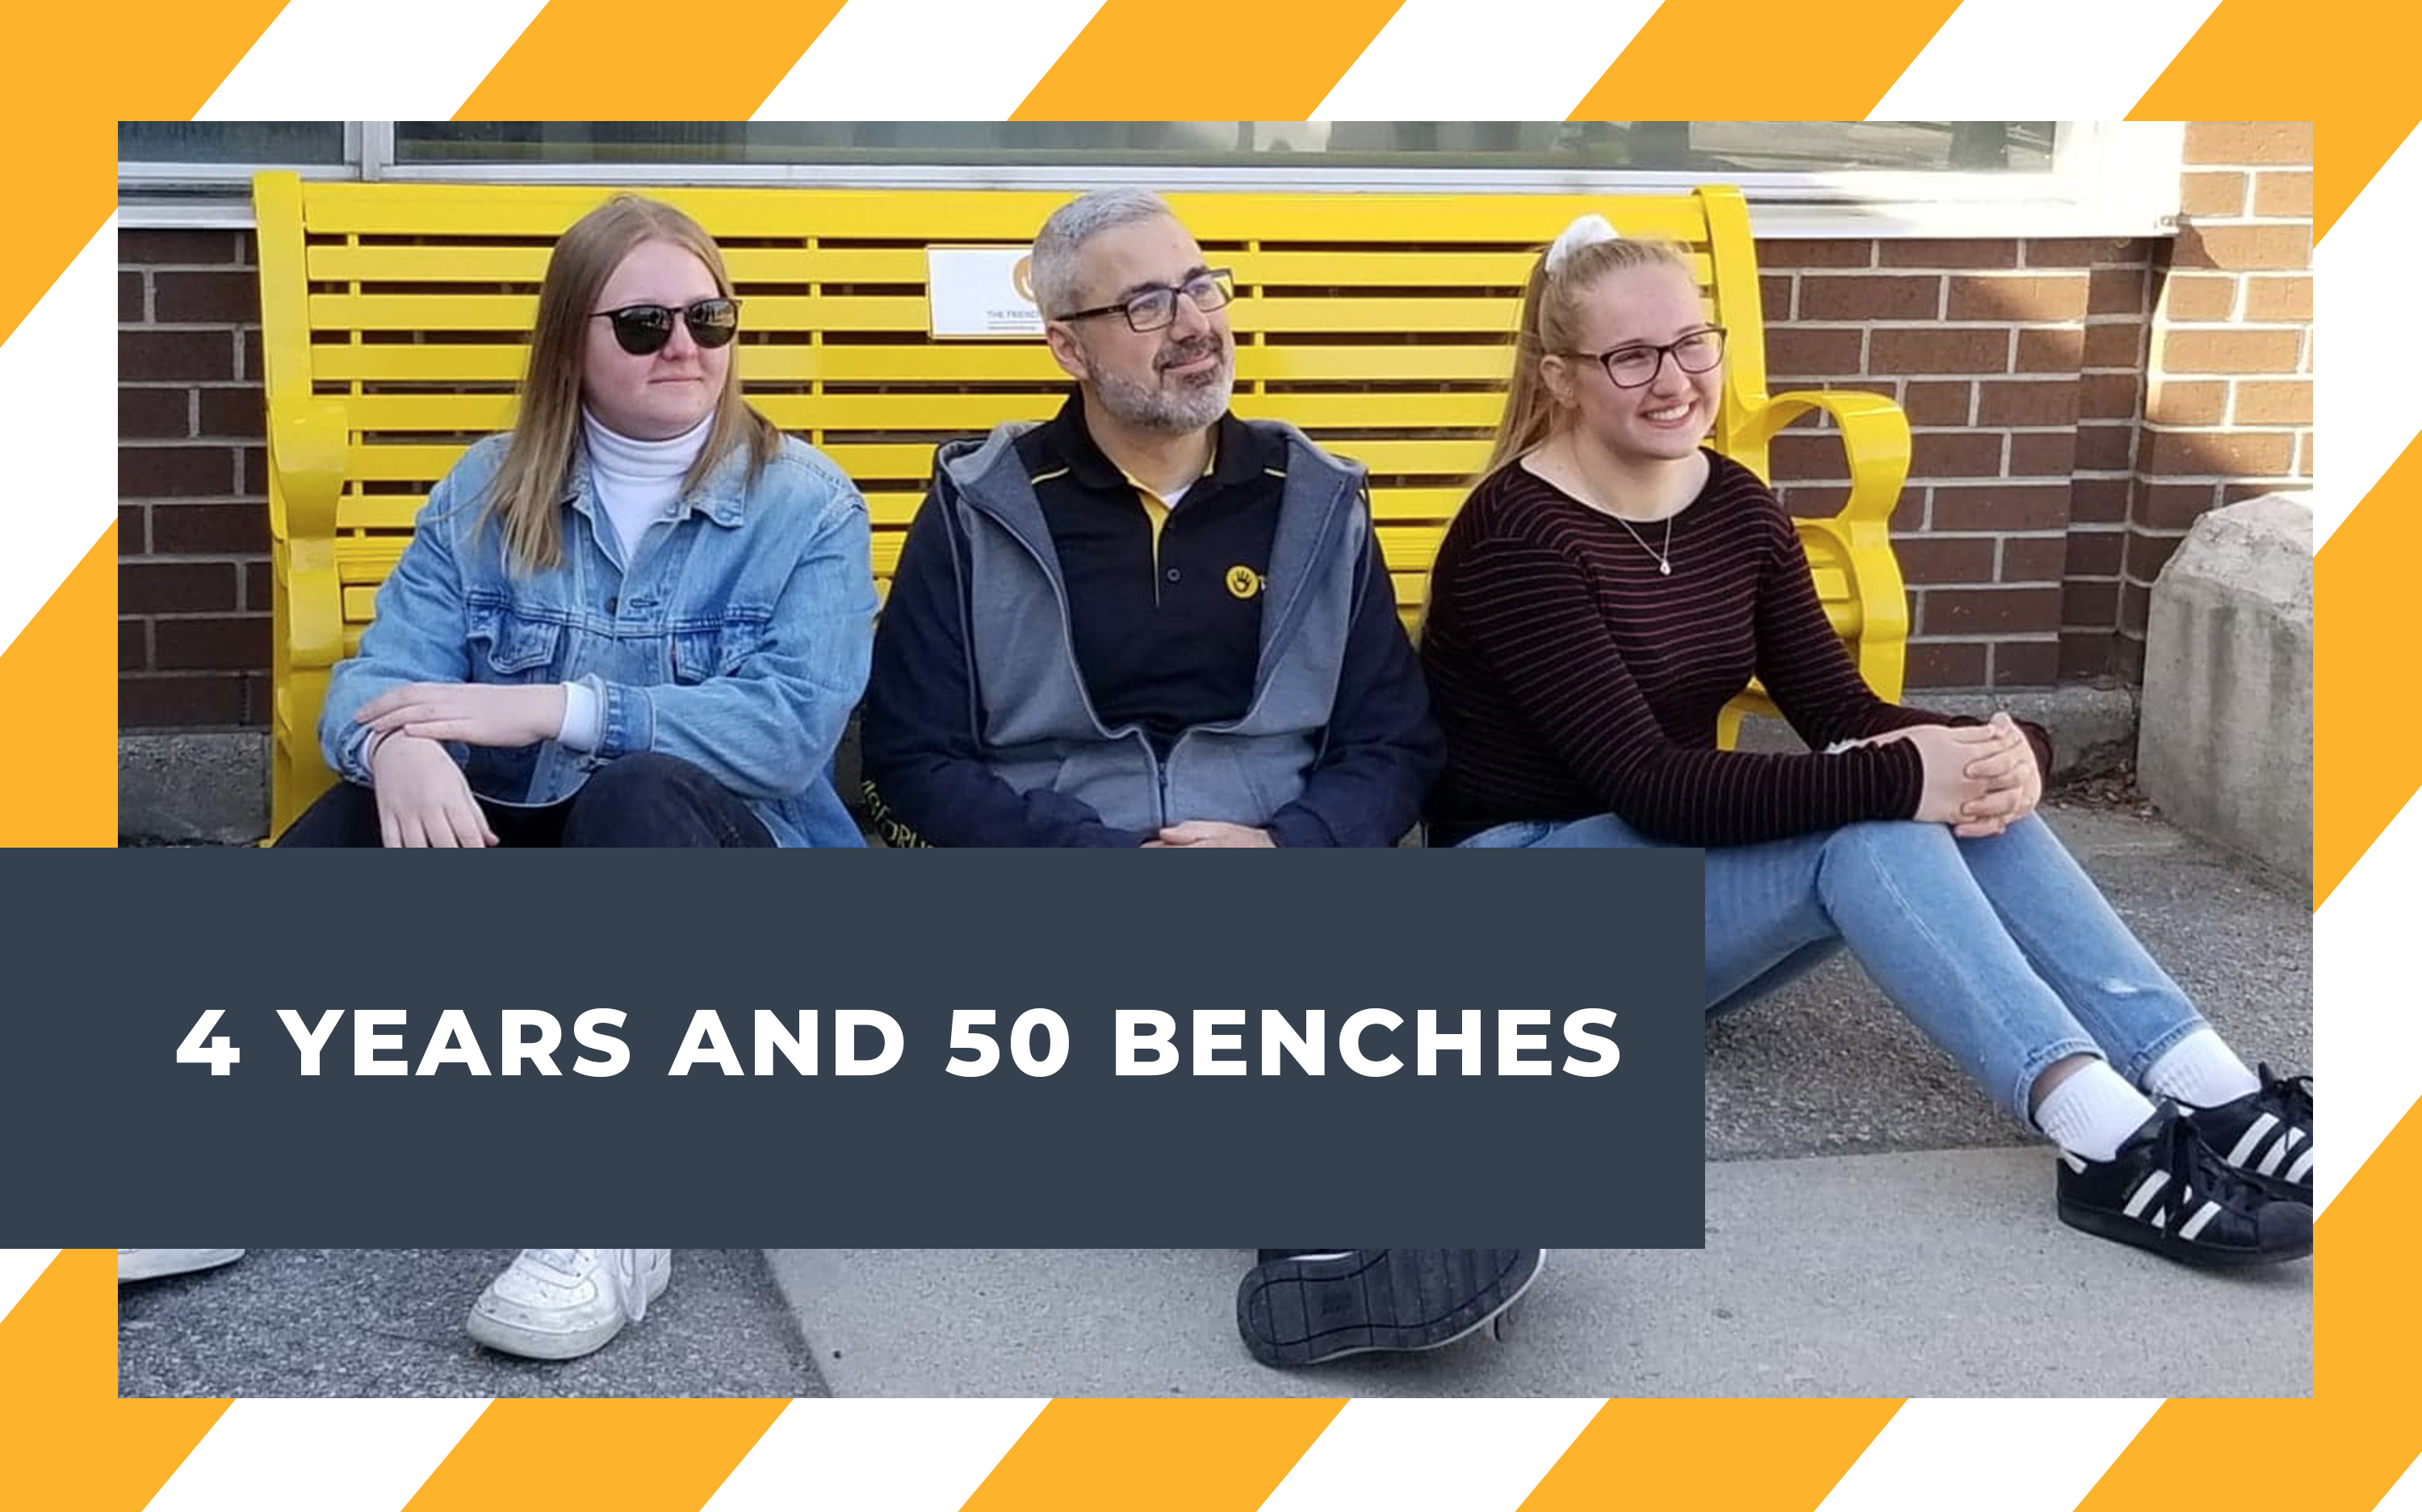 4 Years and 50 Benches – The Past, Present, and Future for The Friendship Bench